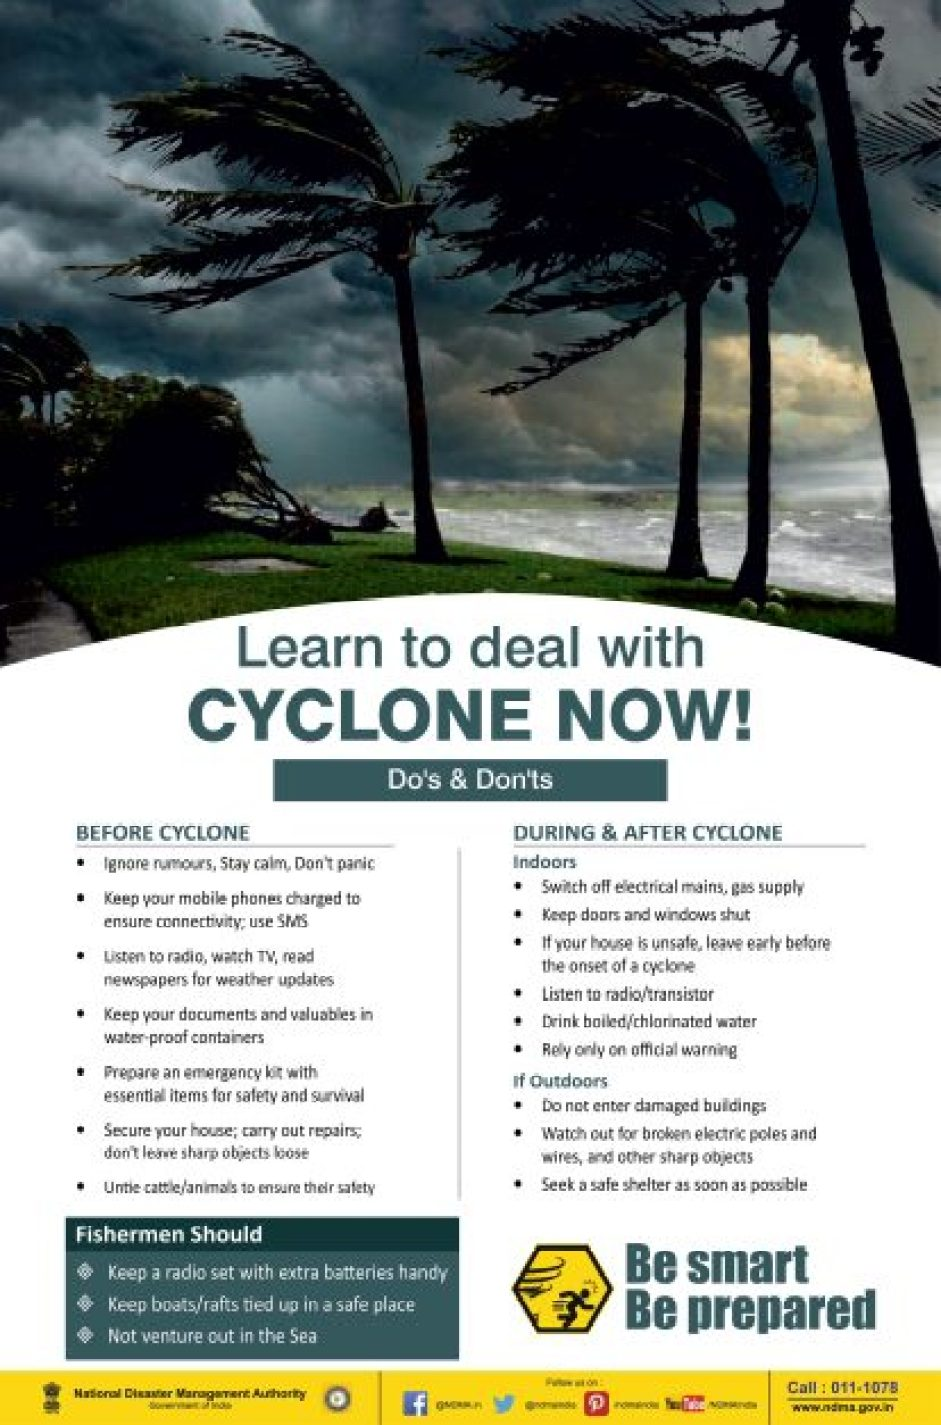 nivar cyclone do's and dont's